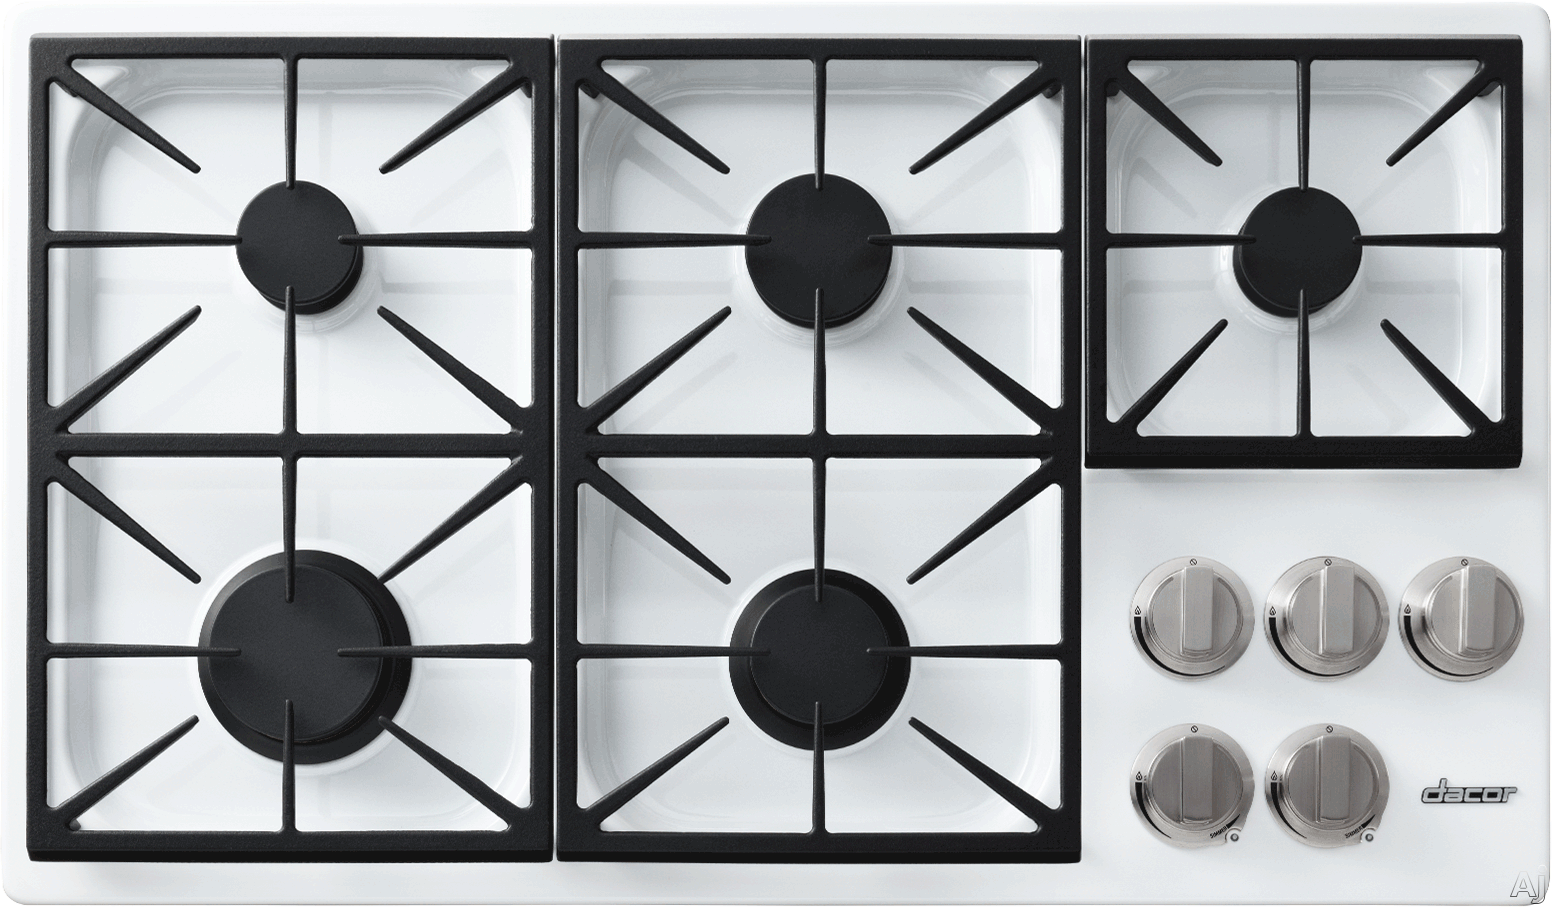 Dacor Discovery DYCT365GWNGH 36 Inch Gas Cooktop with 5 Sealed Burners, SimmerSear Burner, Dual Stacked Burners, Perma-Flame Technology, Illumina Burner Controls, PermaClean Finish and Continuous Grates: White, Natural Gas